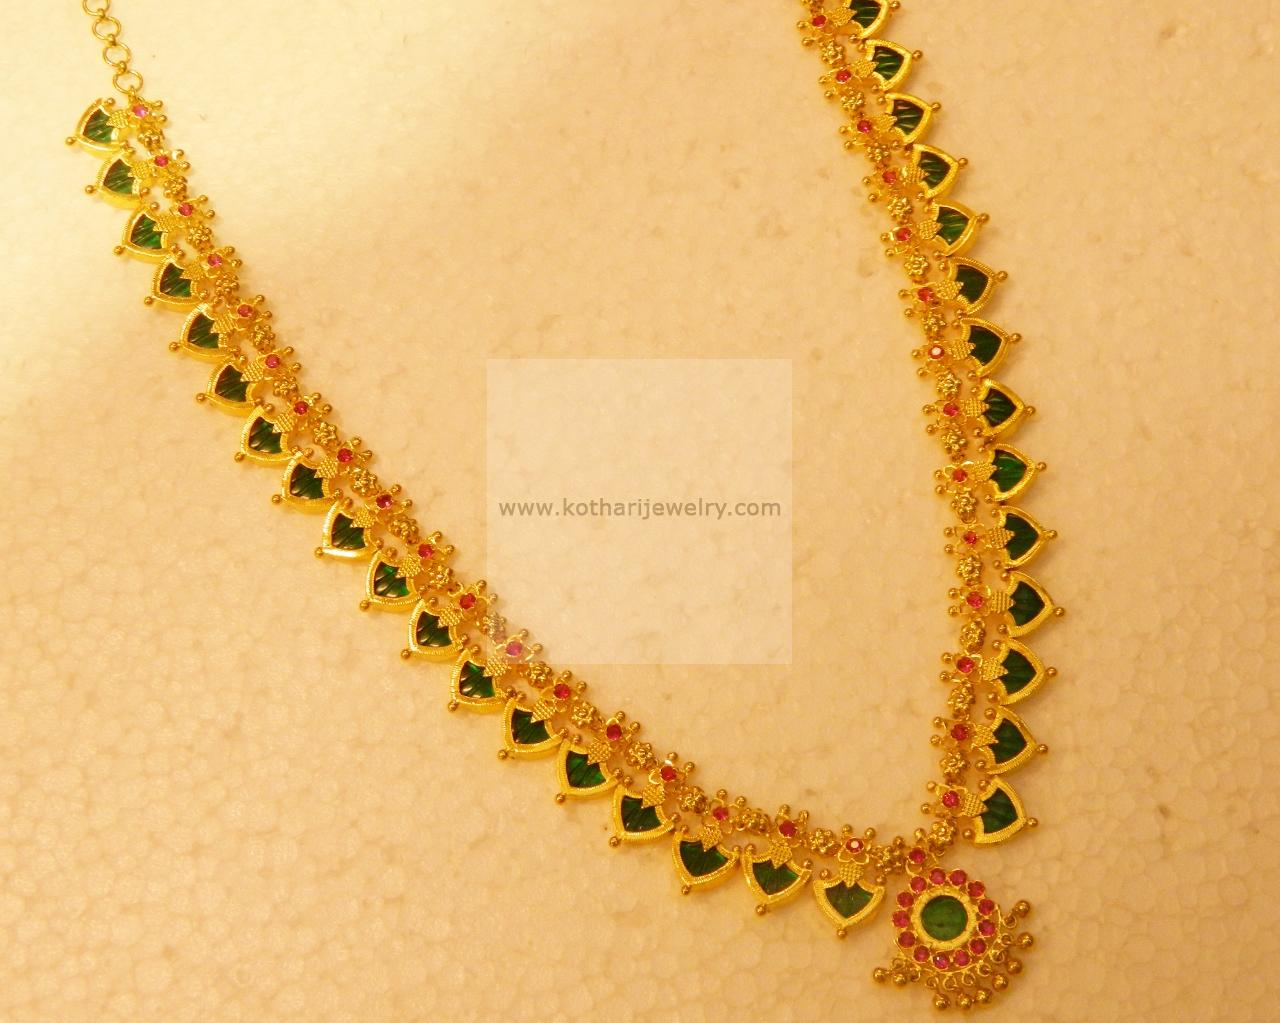 Necklaces / Harams - Gold Jewellery Necklaces / Harams ...